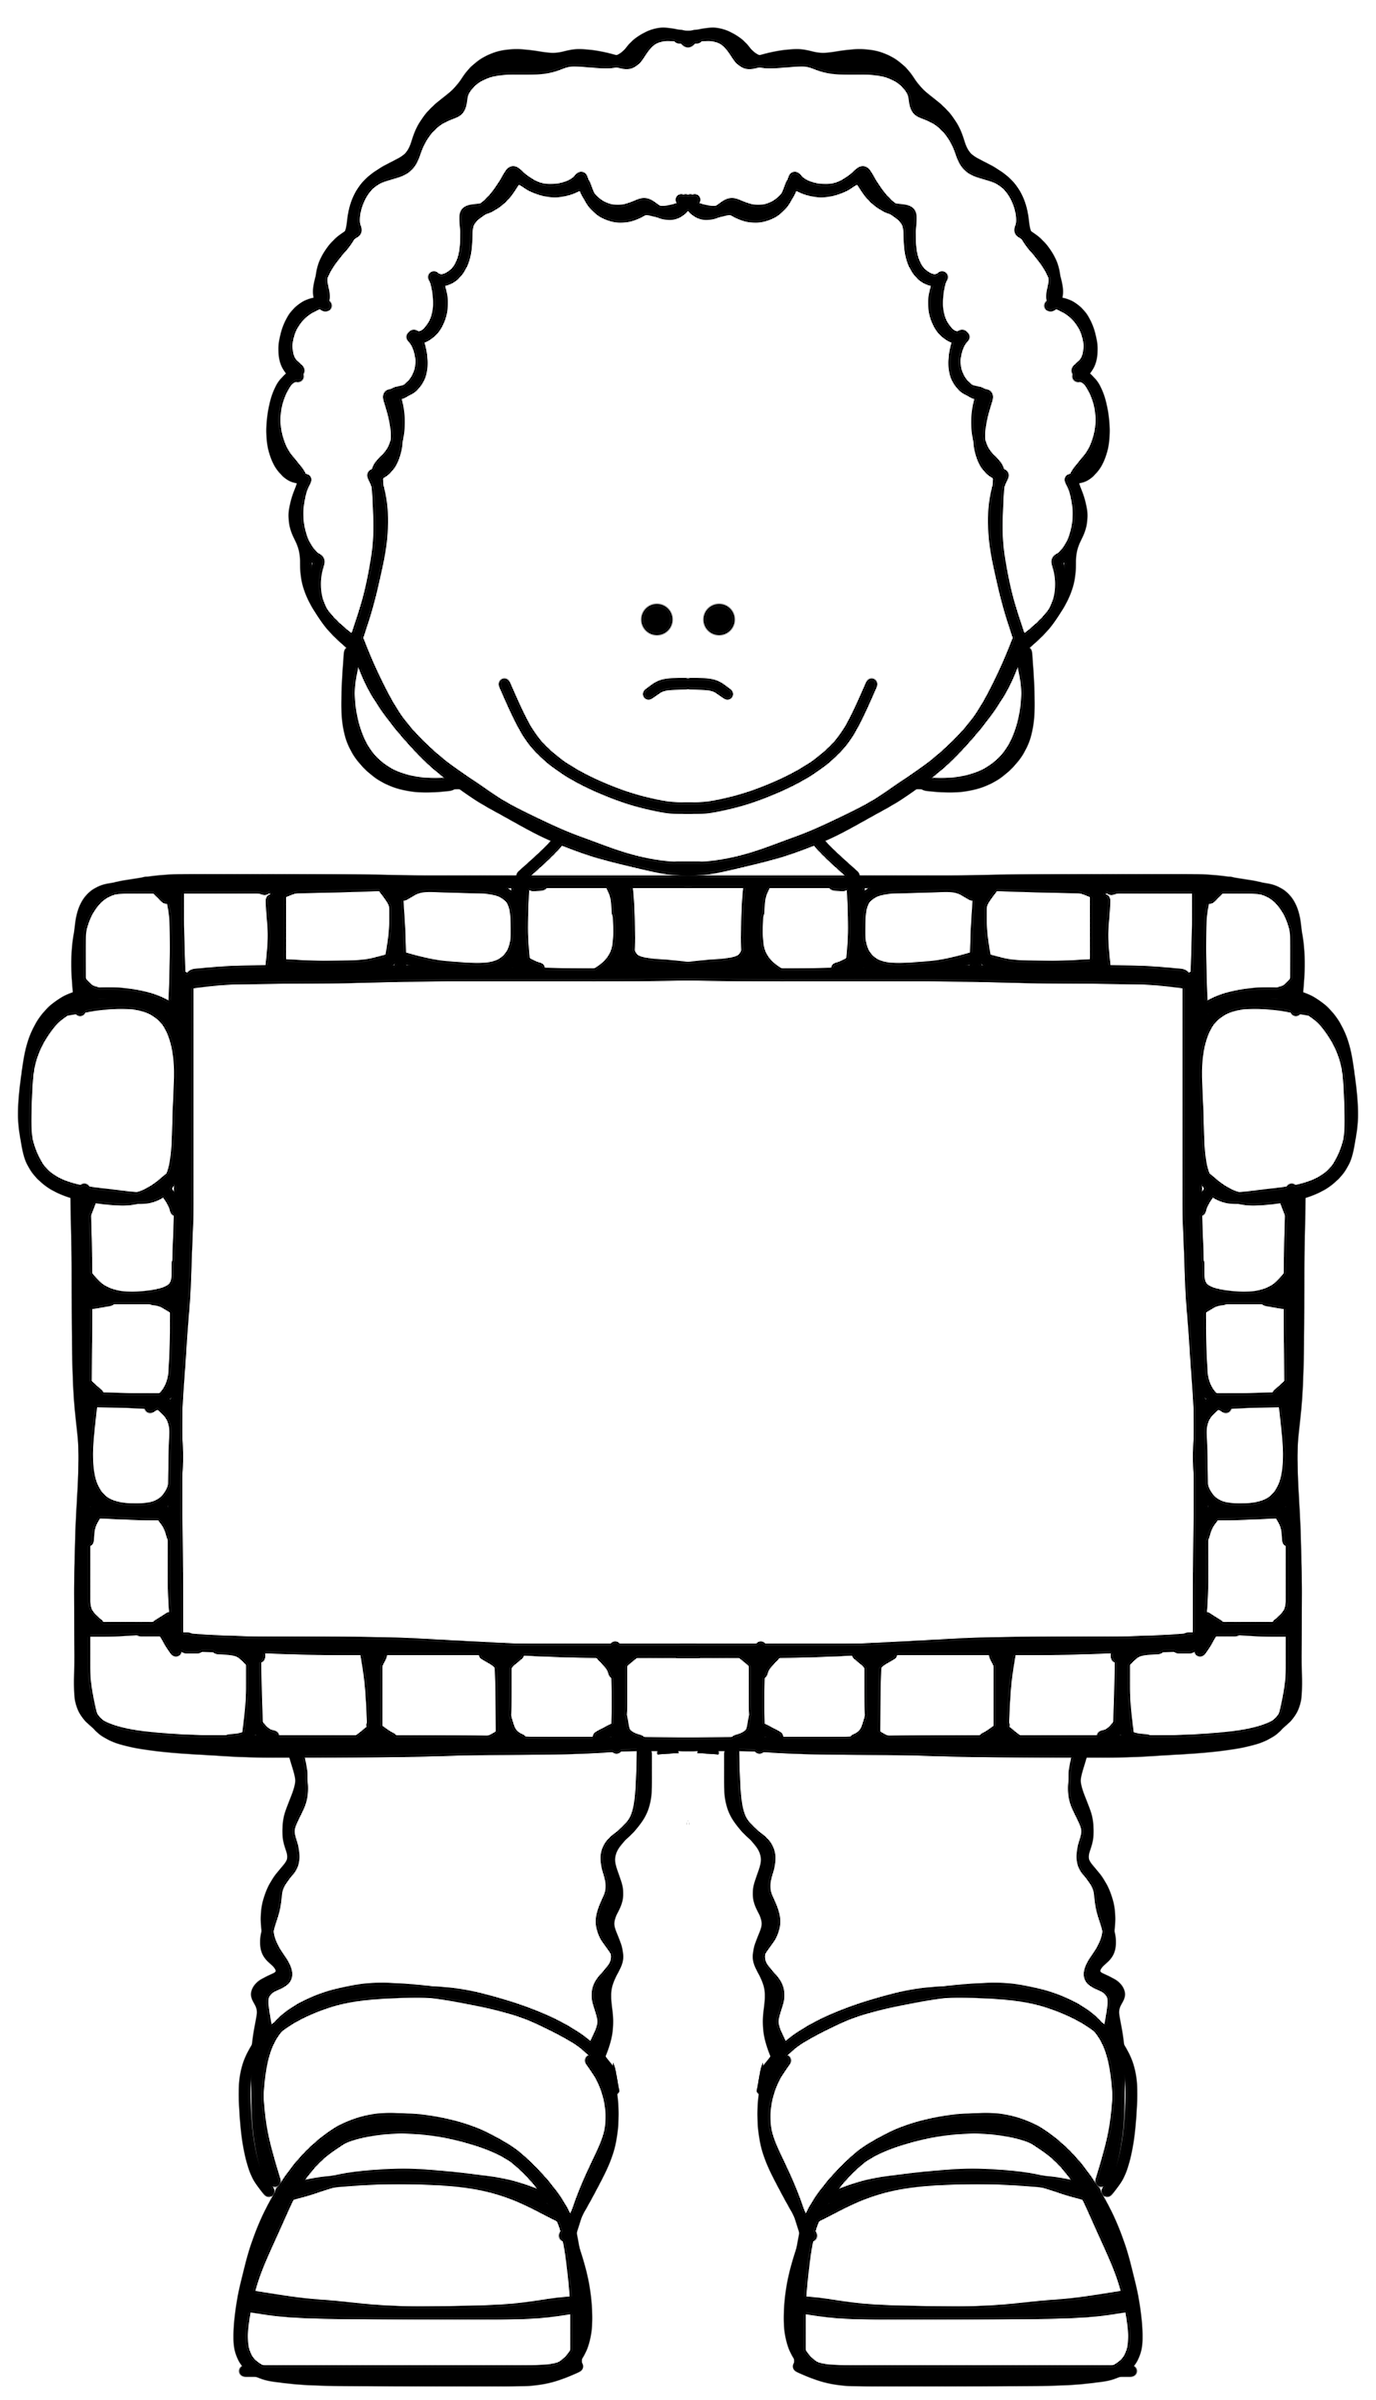 School outline clipart png free library Pin by Vickie Wilson on Kindergarten pattern templates | Pinterest ... png free library